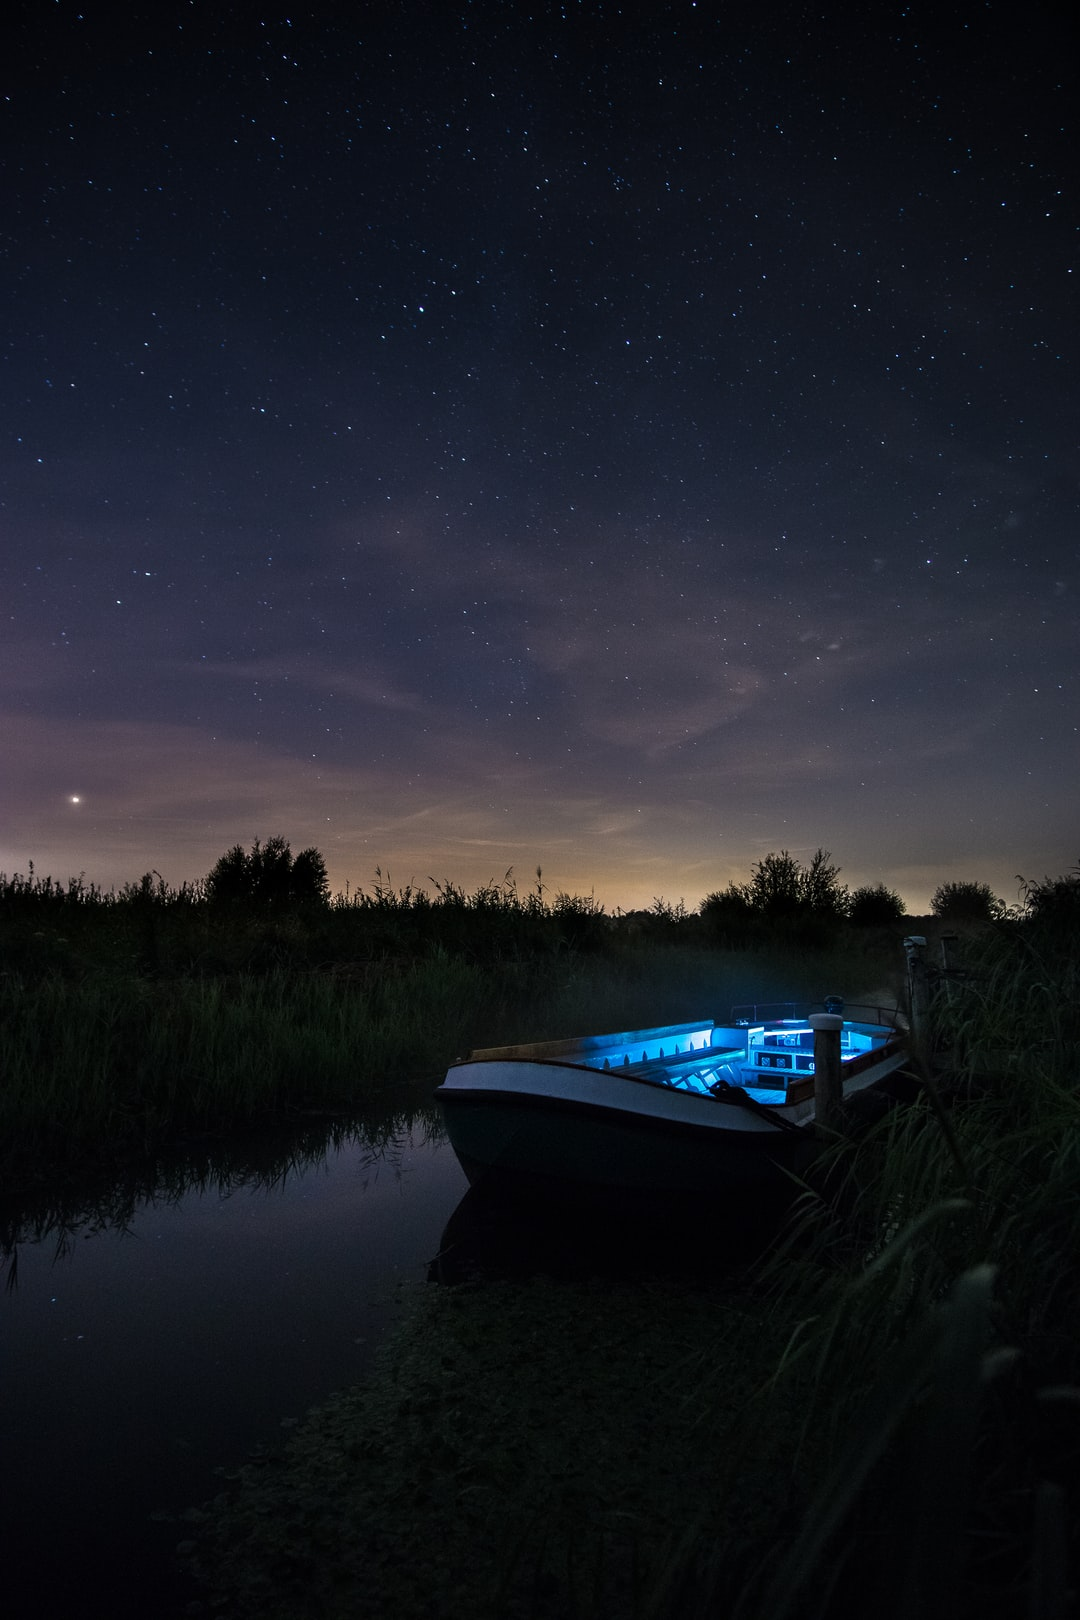 A boat is tied to the dock under a starry nights' sky.